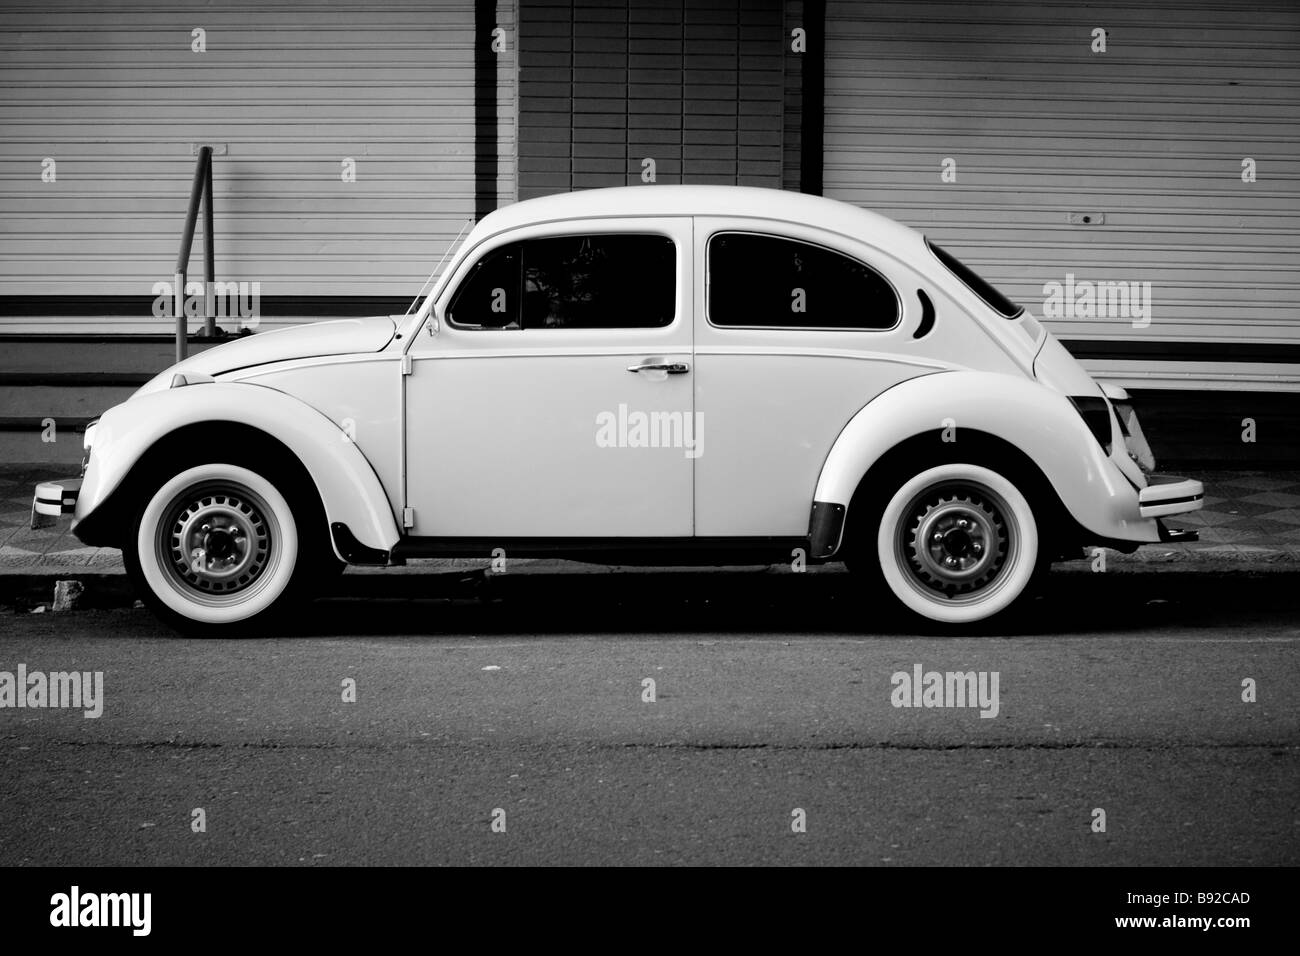 vintage white volkwagen beetle with white side tires parked on the street - Stock Image